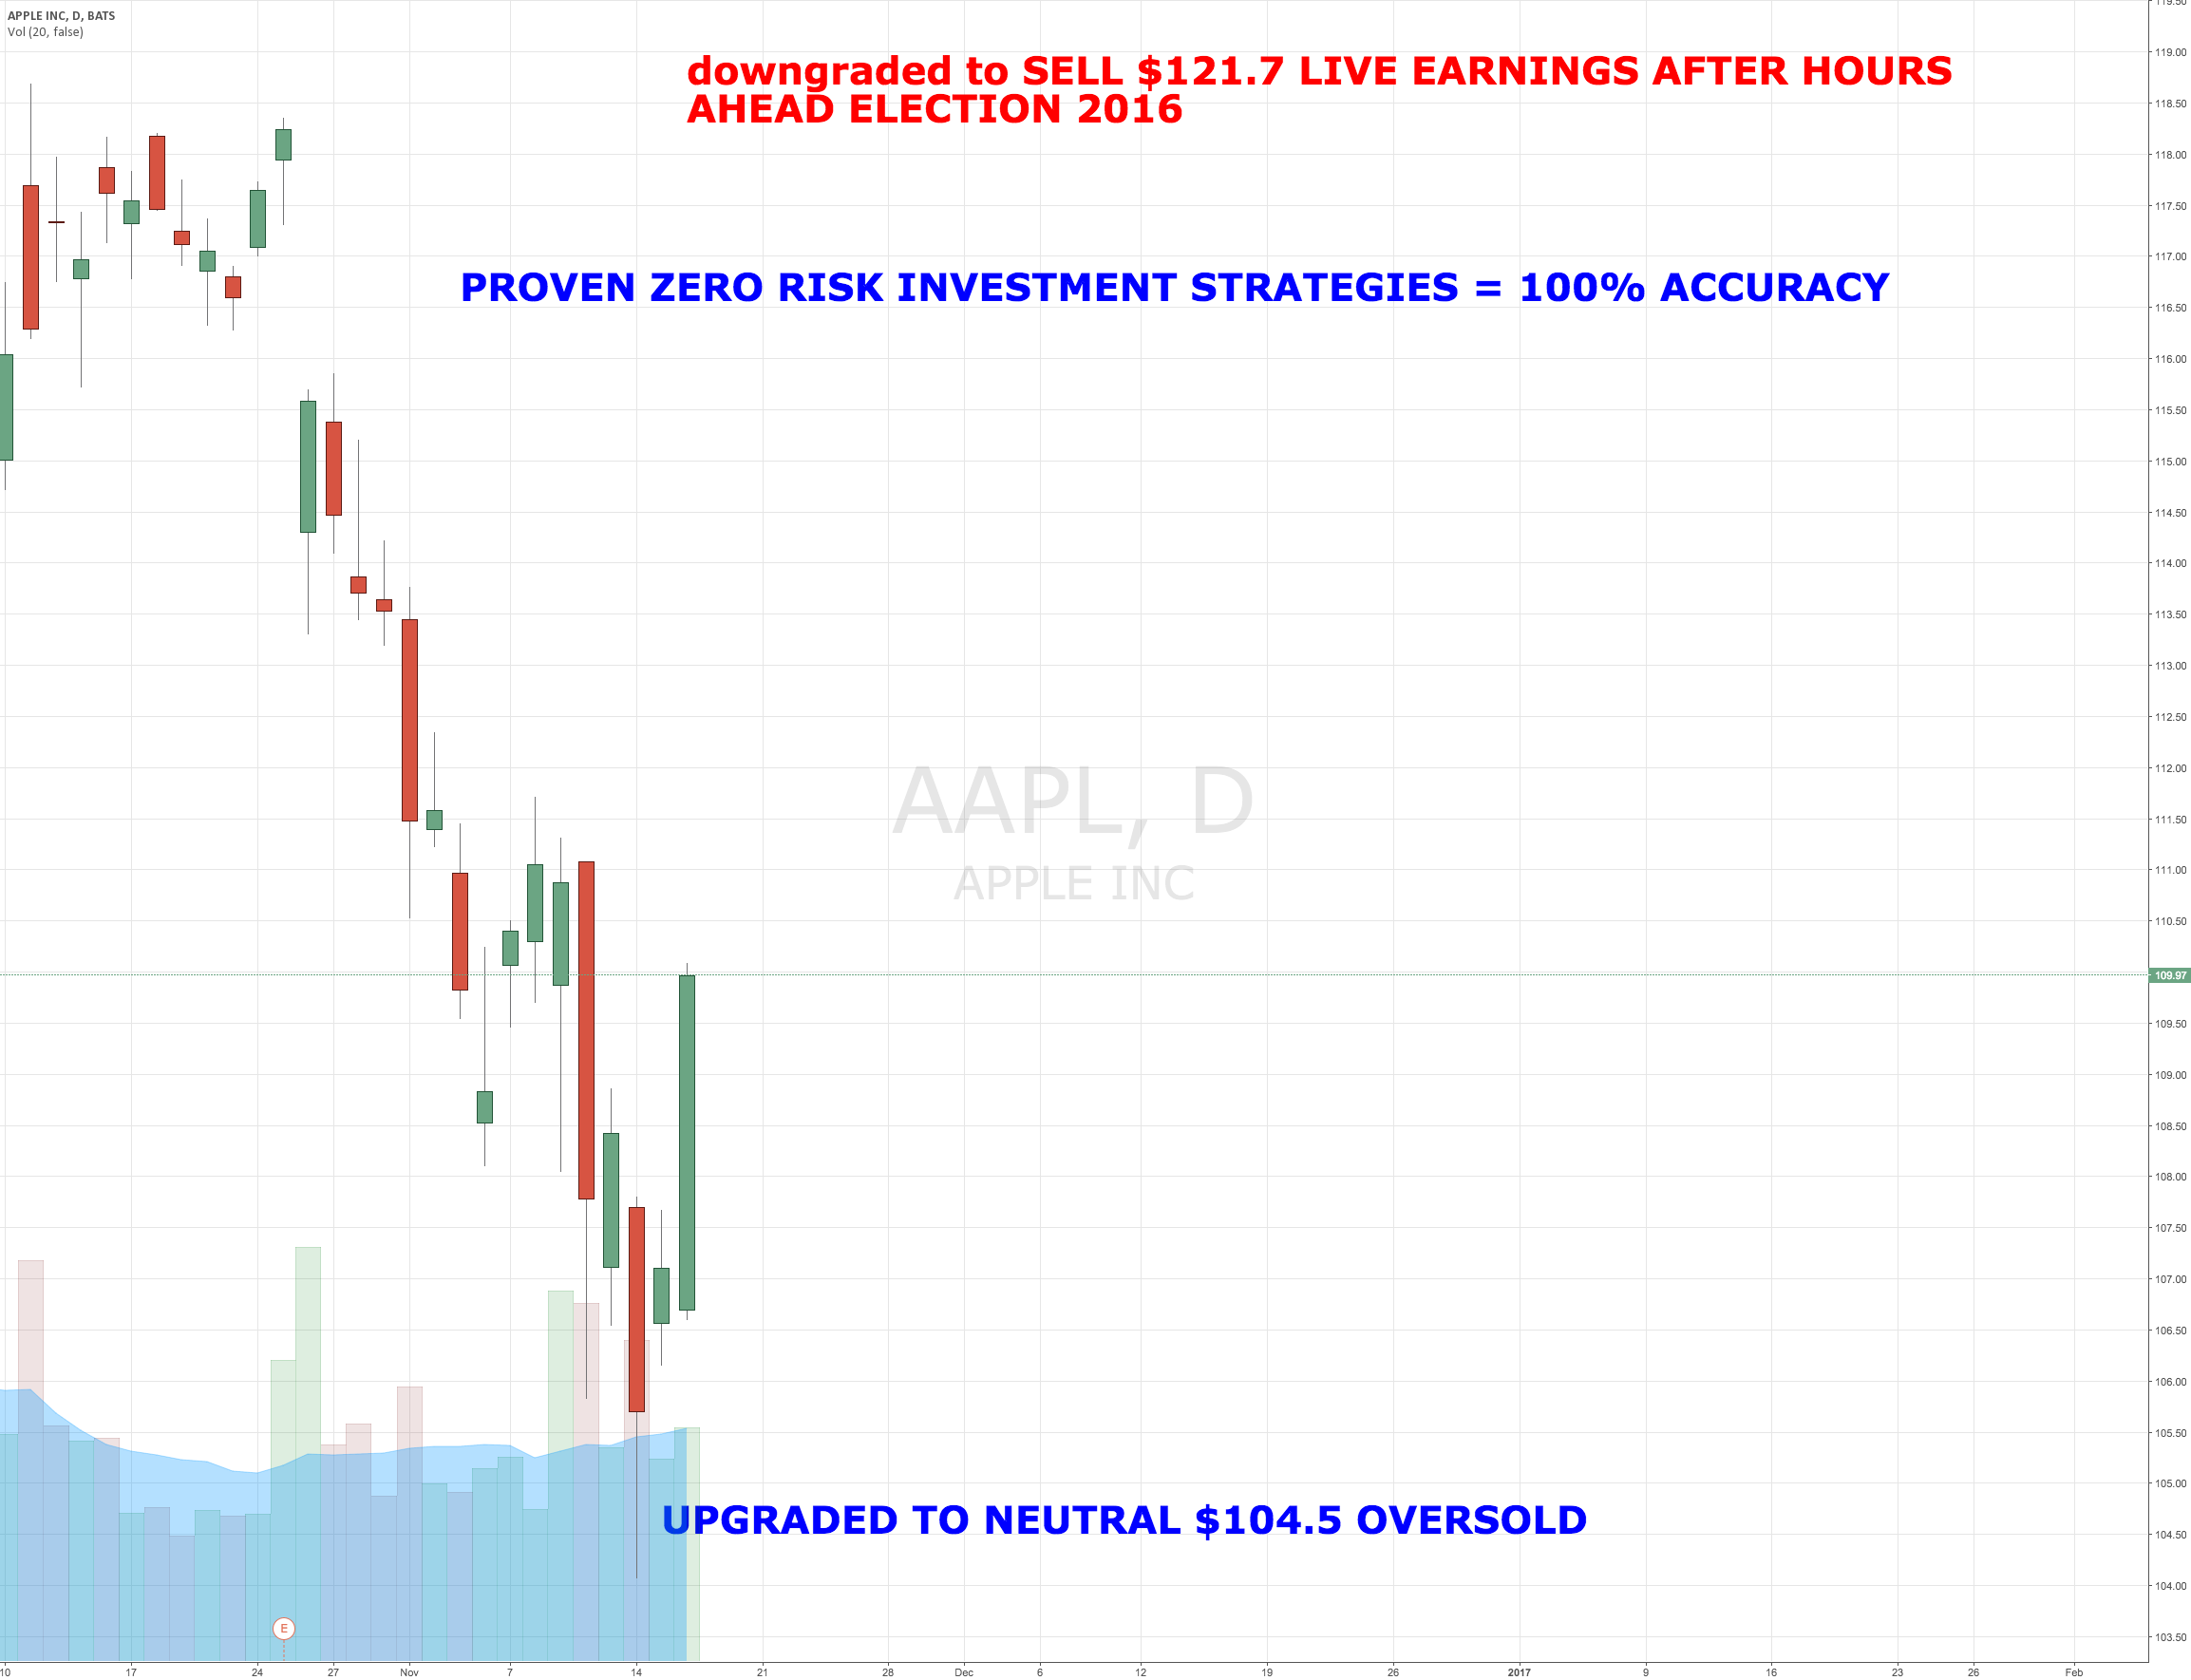 World's Largest Investor Upgrades Apple $104.5 OVERSOLD